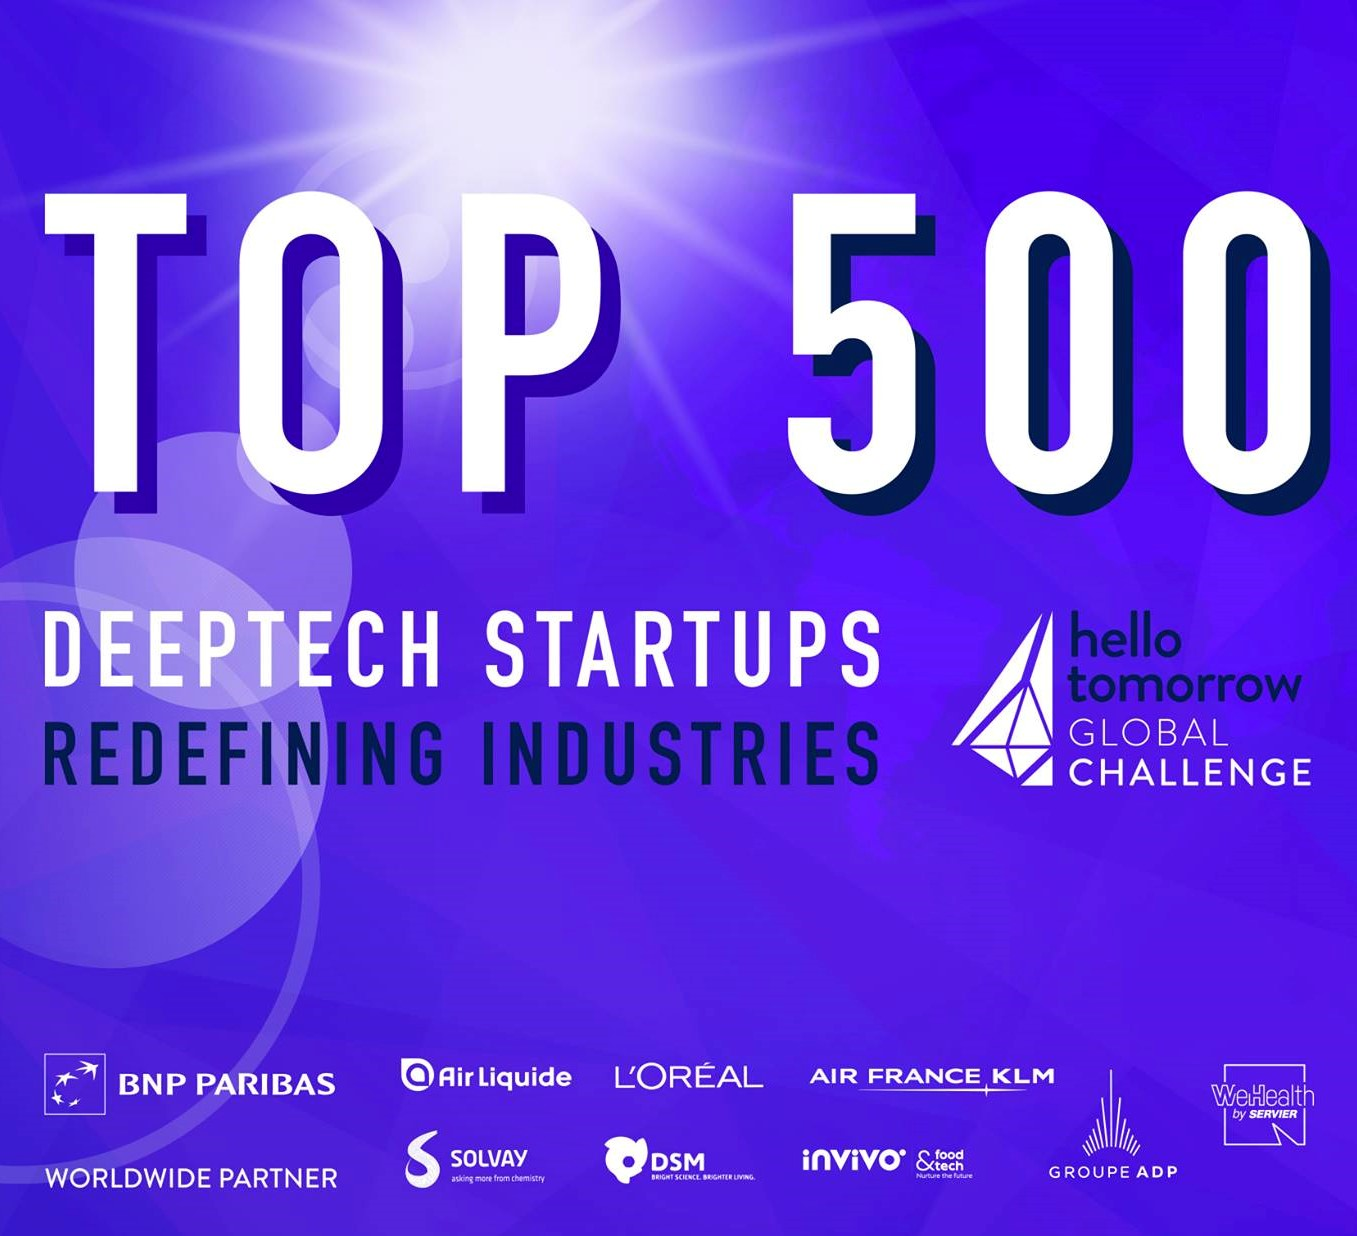 Exogenus Therapeutics on the Top 500 deeptech startups shortlist of Hello Tommorrow